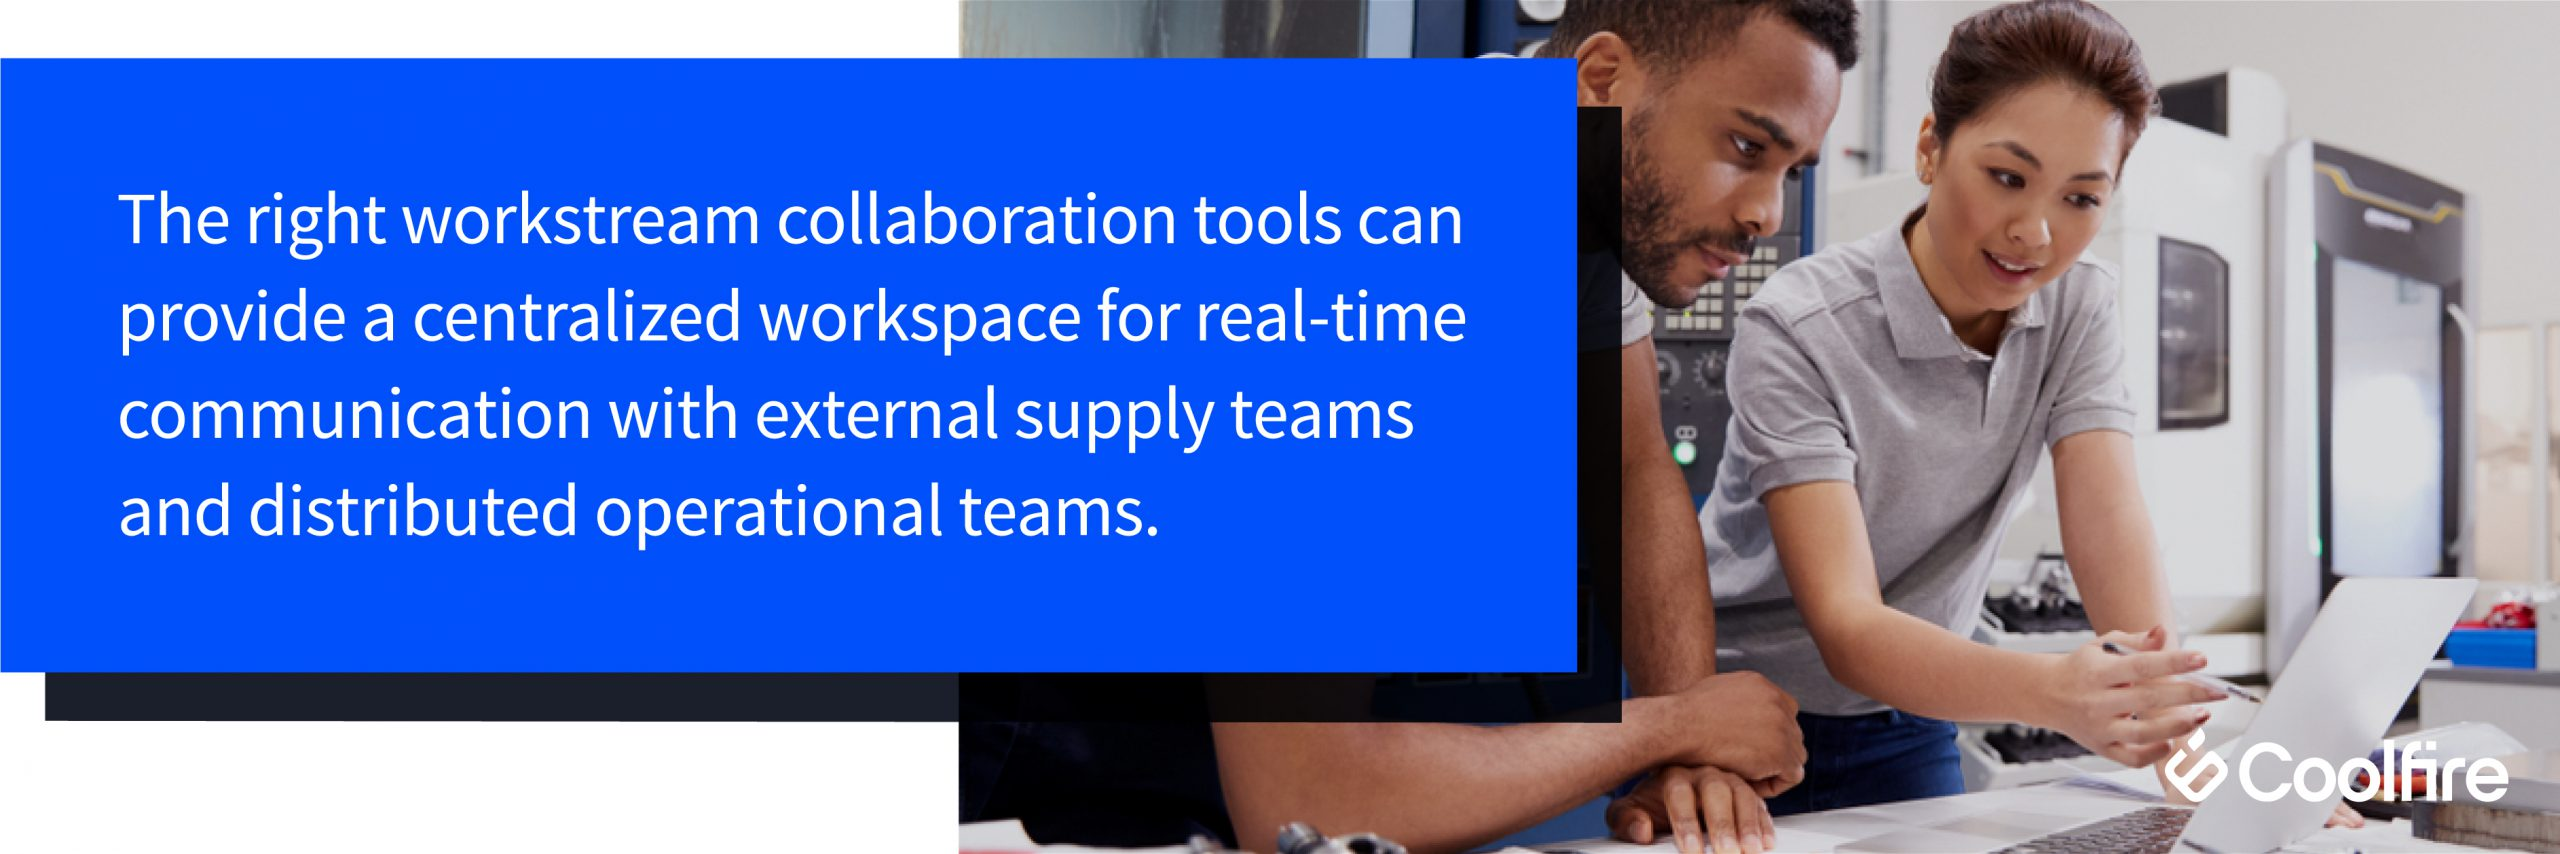 2019 Operational Goals Collaboration Tools